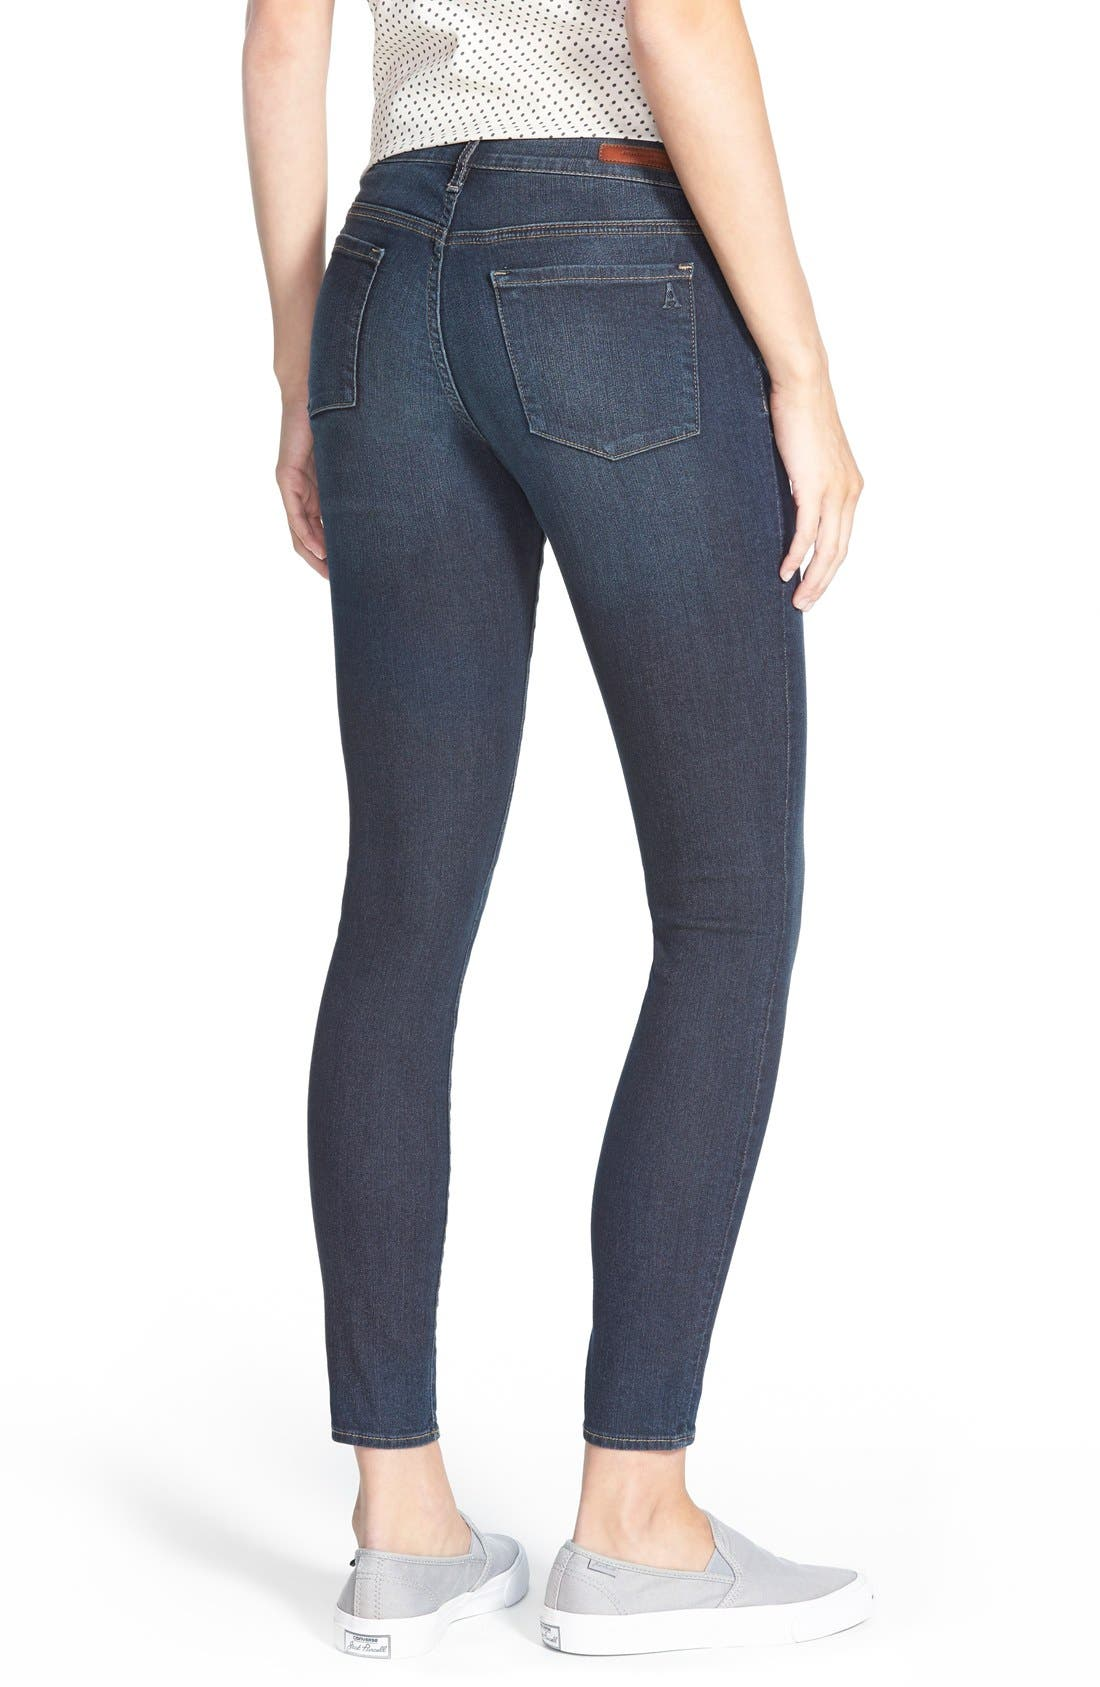 Alternate Image 3  - Articles of Society 'Sarah' Skinny Jeans (Blue Moon)